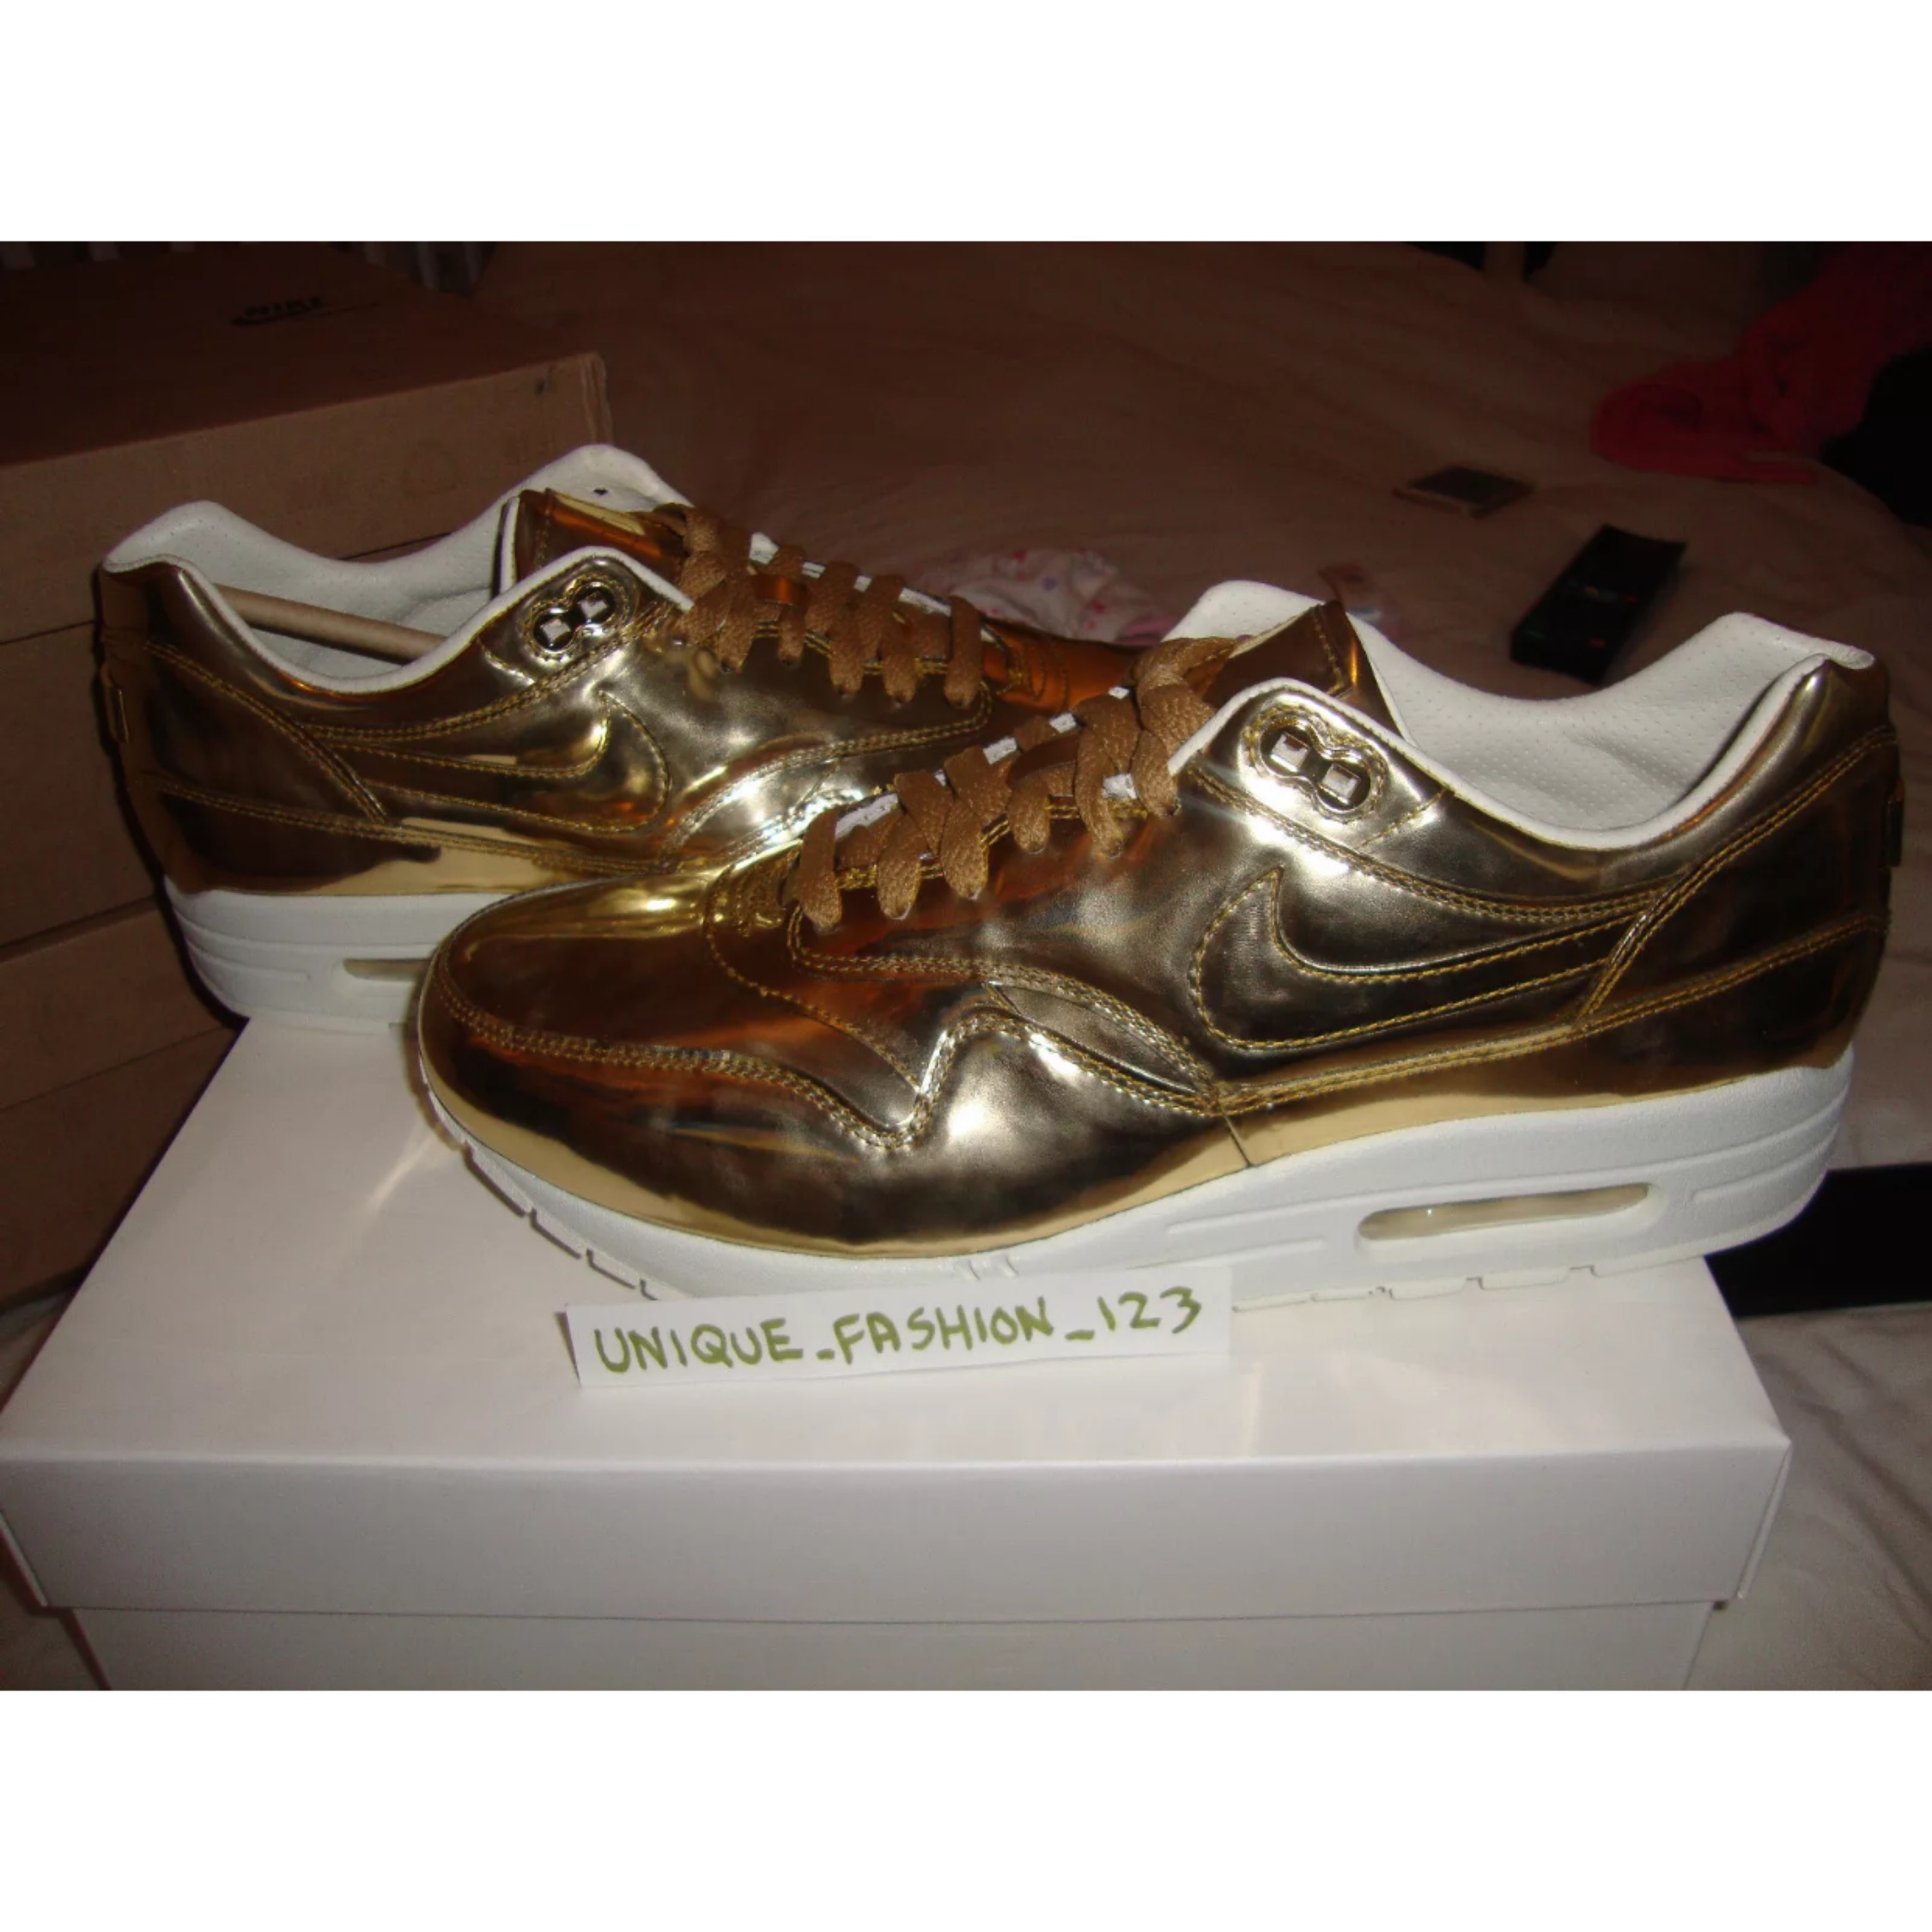 Sp Liquid Max 1 Air Wmns Nike Metal Gold fbyvY6g7